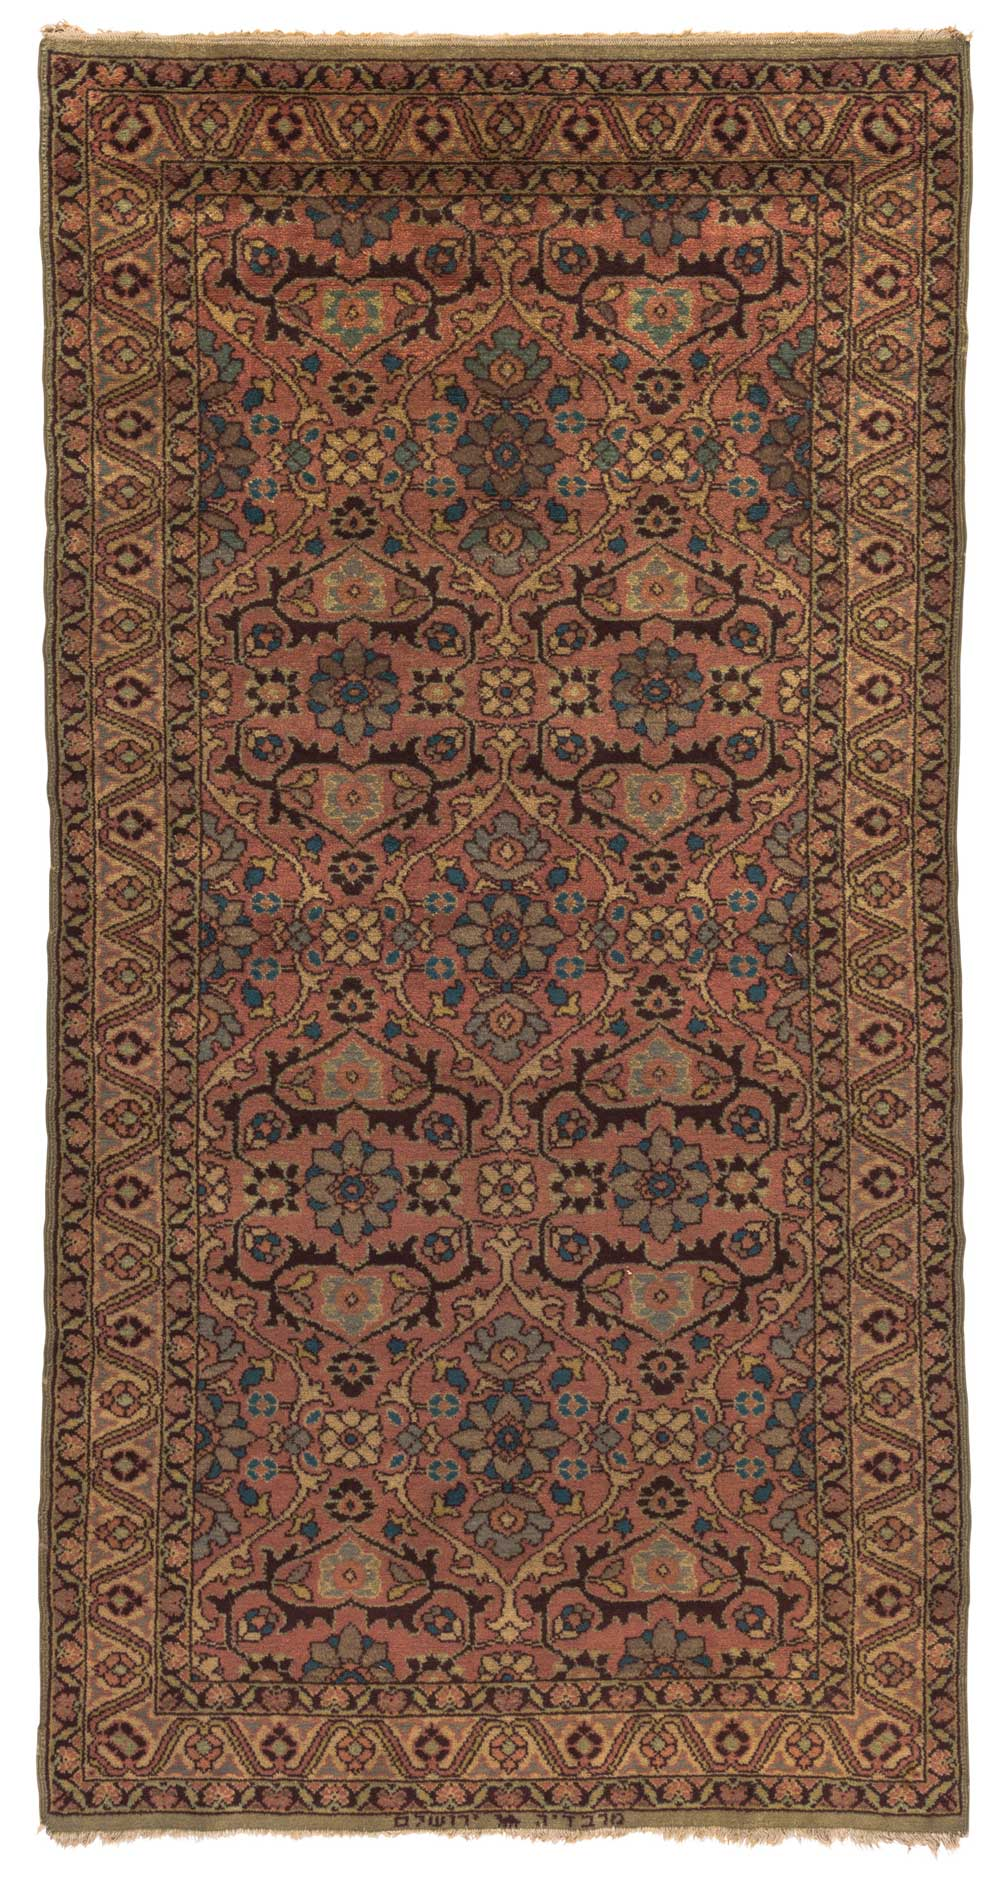 Bezalel School Of Art Rug Jerum Early 20th Century 229 X 120 Cm An Example The Rugs Woven At In Between 1906